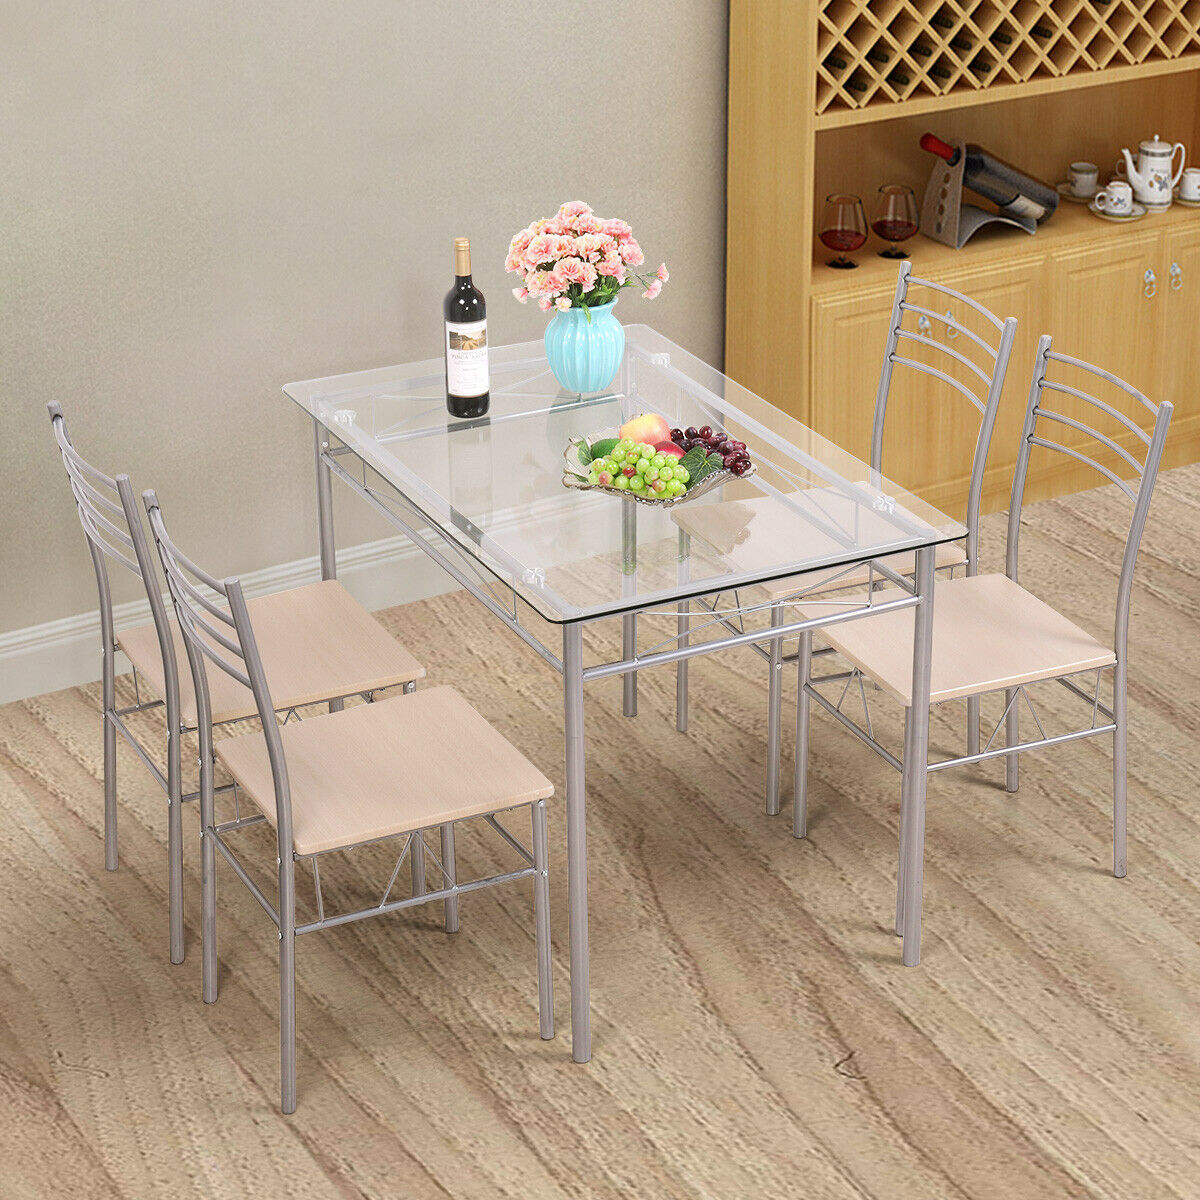 5 Piece Dinning Set Glass Top Table and 4 Chairs Kitchen Breakfast Furniture